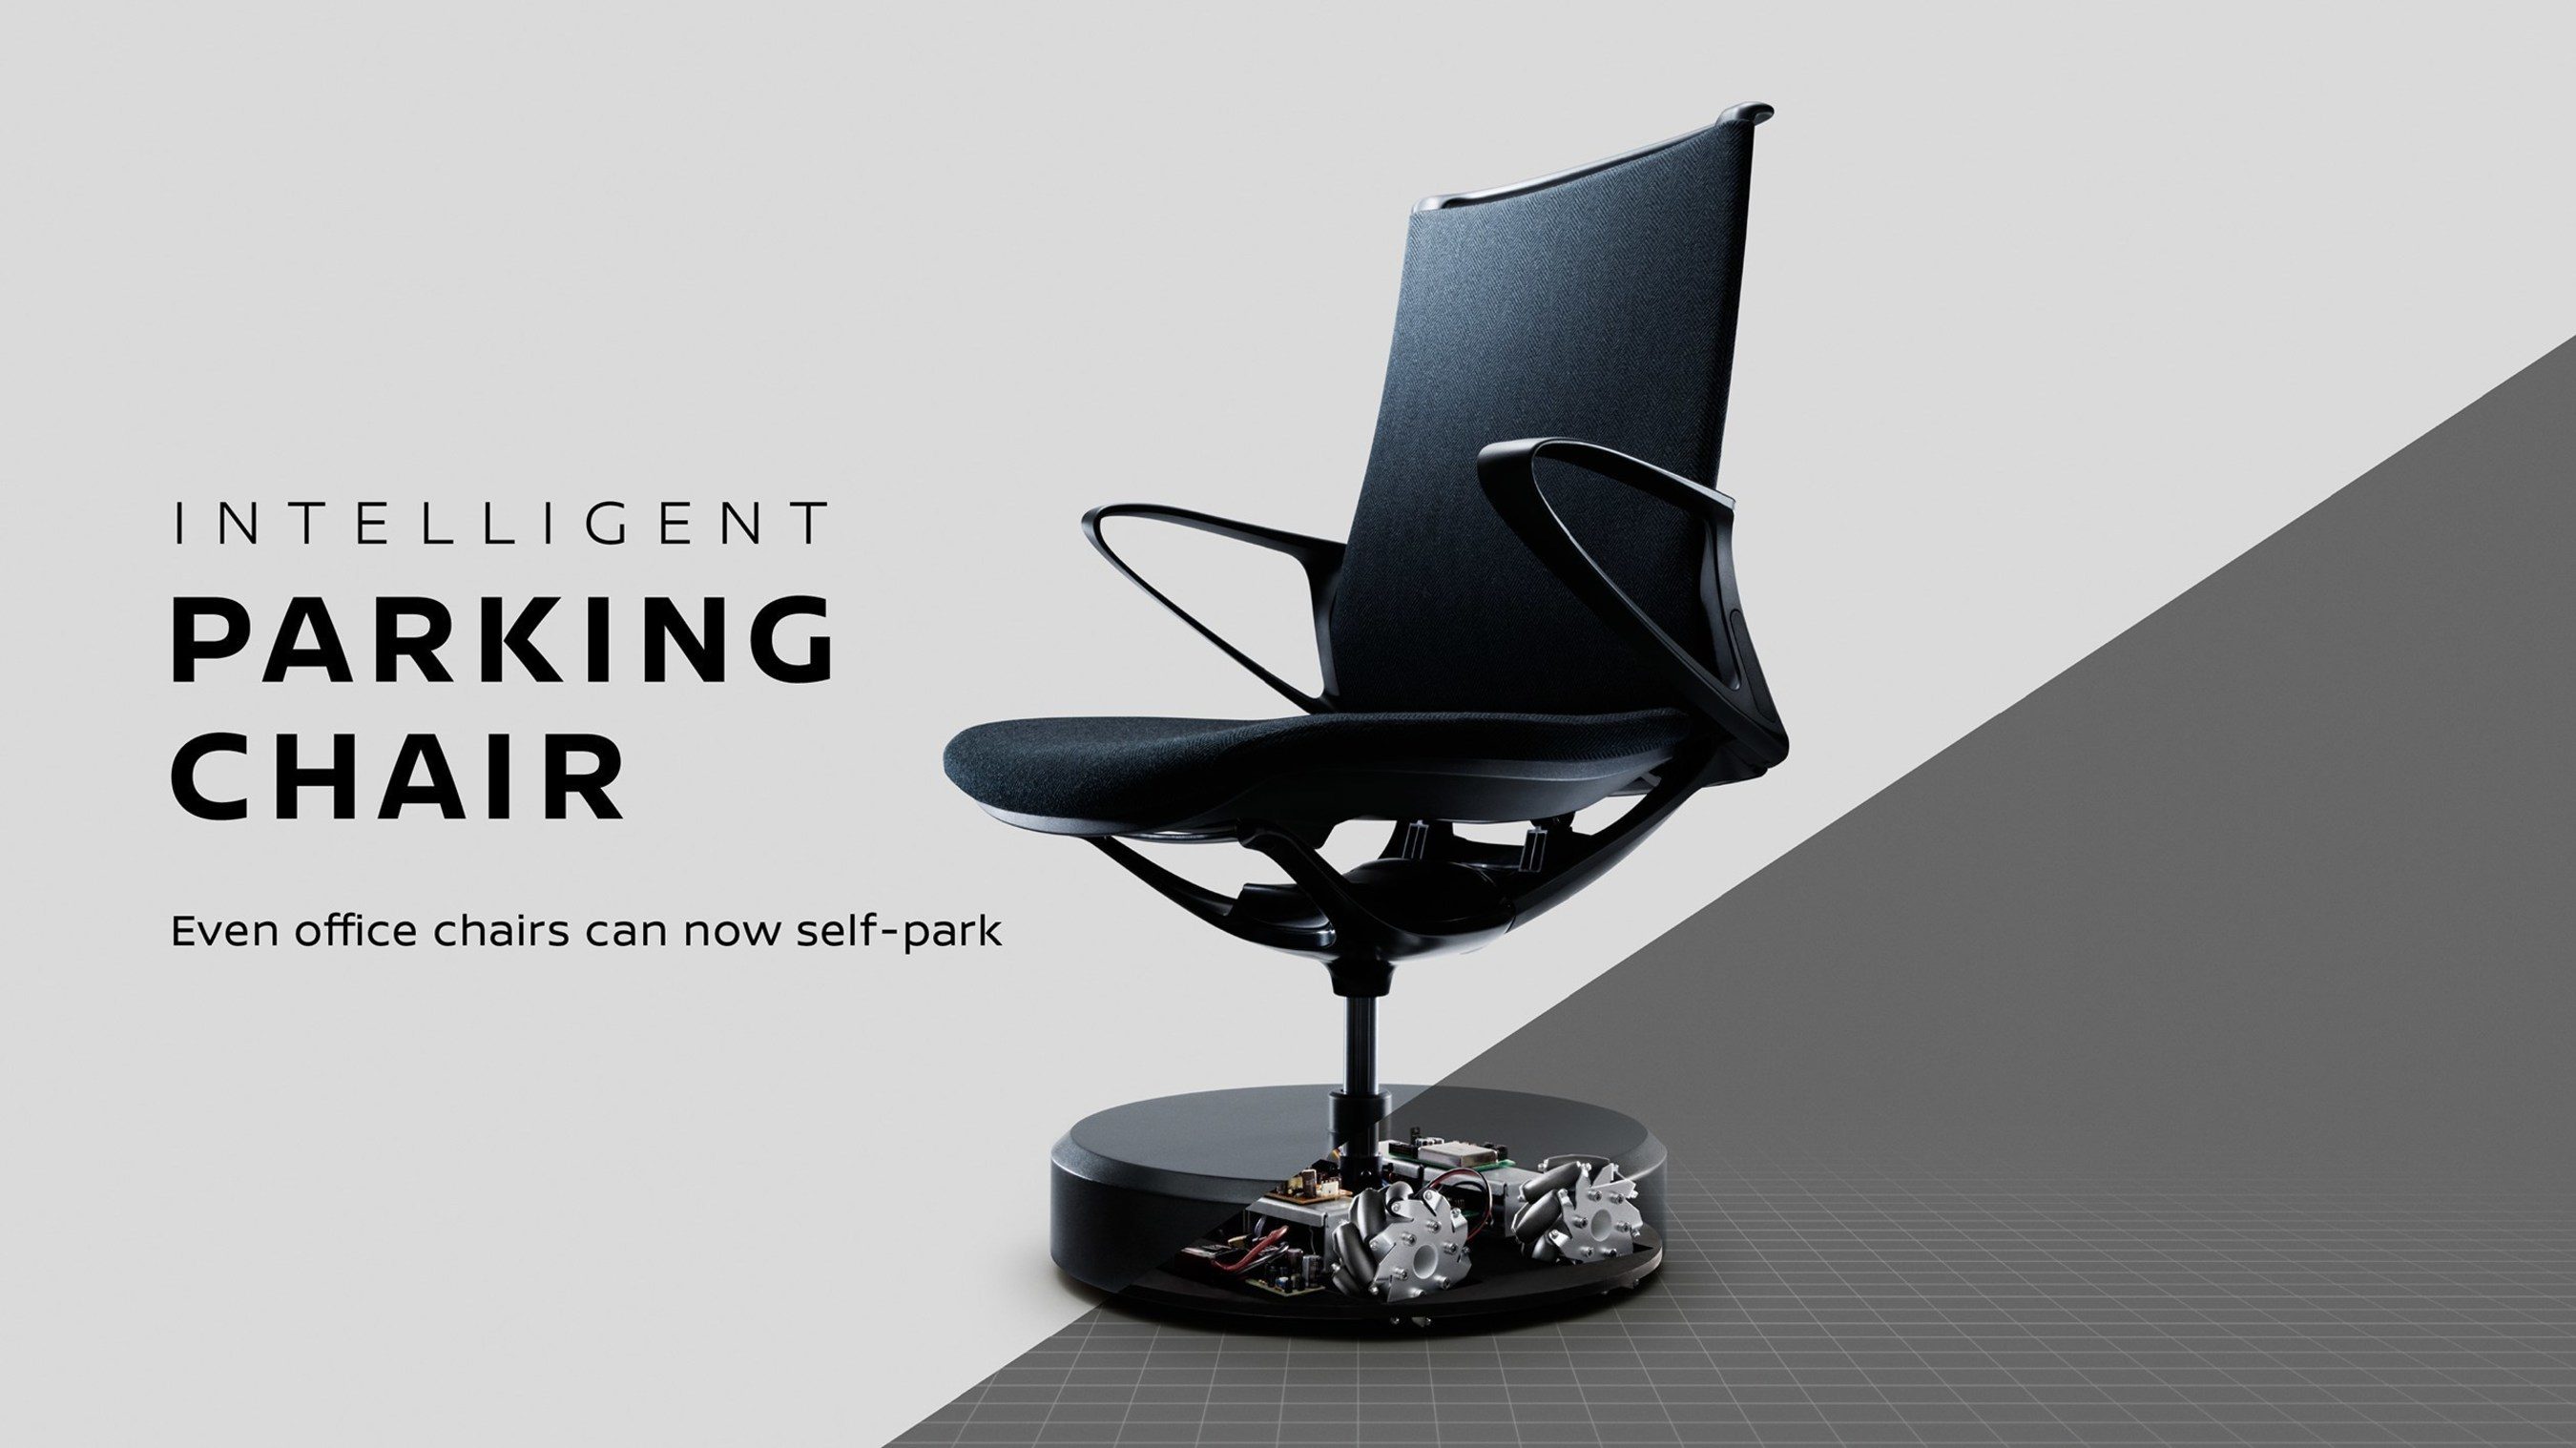 """The """"Intelligent Parking Chair"""" is inspired by Nissan's """"Intelligent Park Assist"""" technology."""